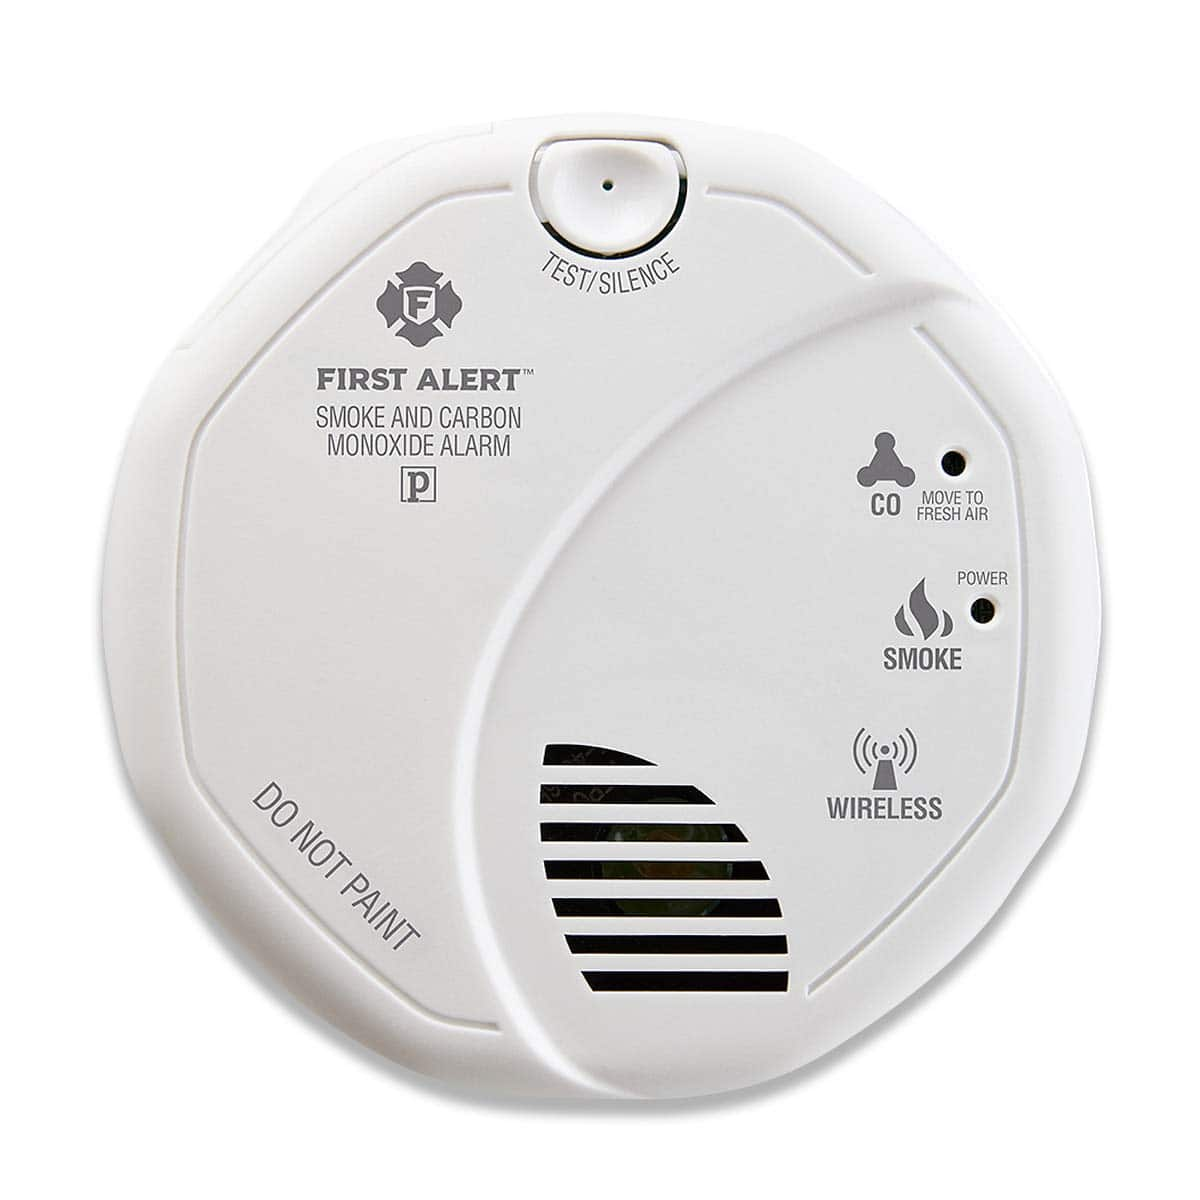 First Alert 2-In-1 Z-Wave Smoke Detector & Carbon Monoxide Alarm $34.18 + Free Shipping